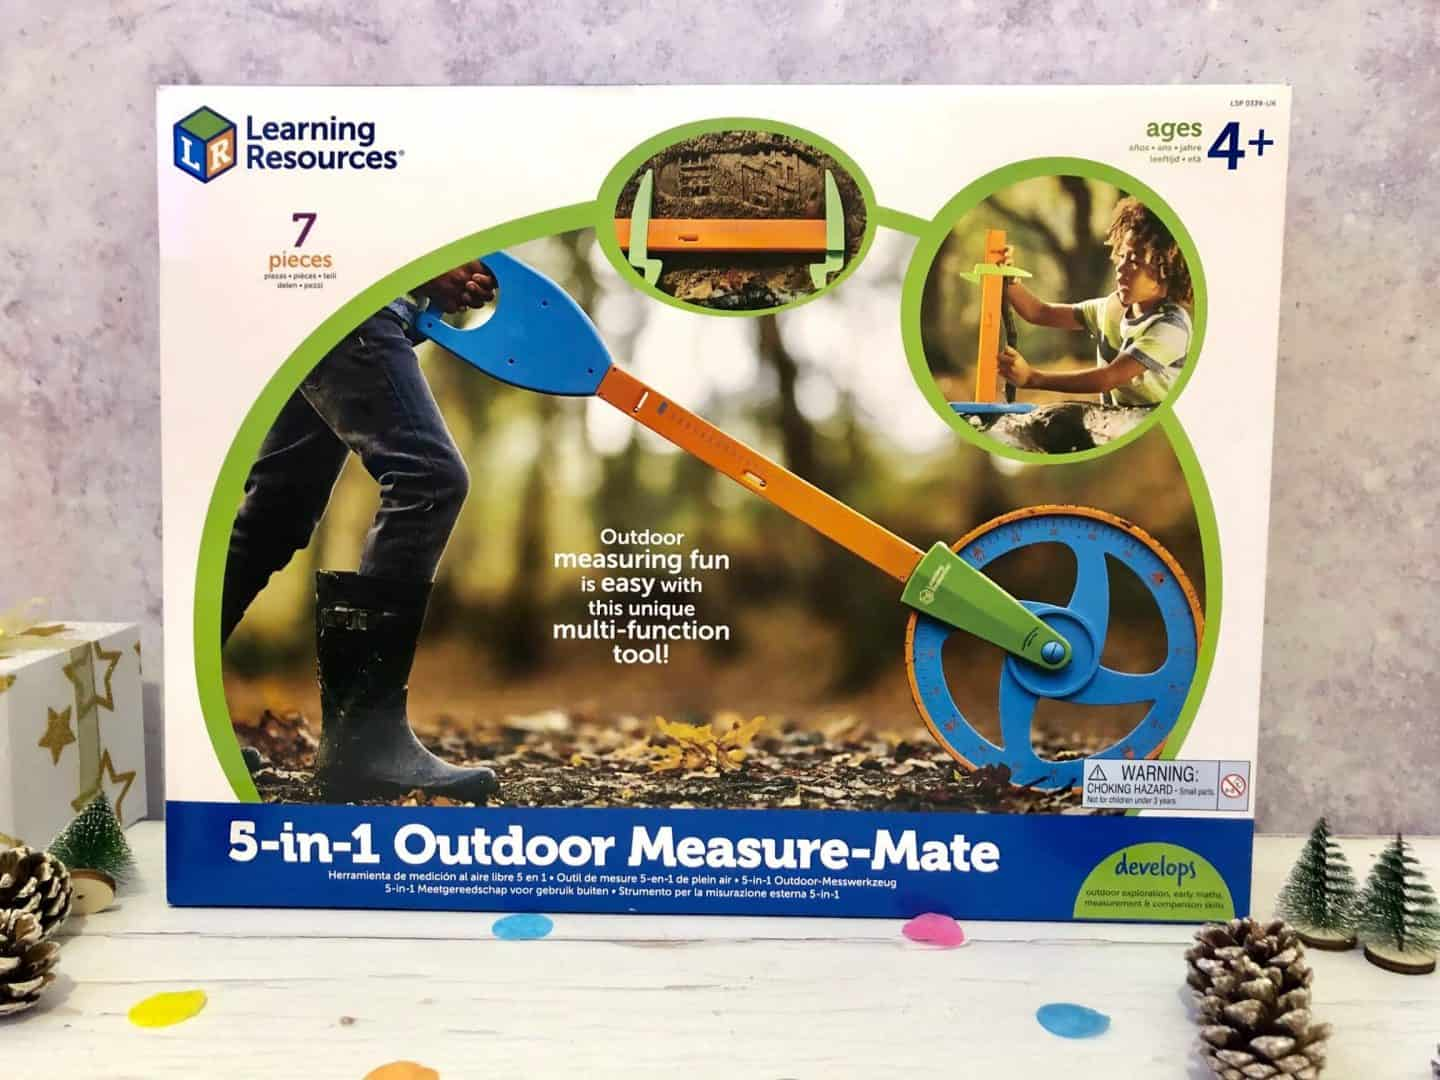 5-in-1 Outdoor Measure-Mate from Learning Resources